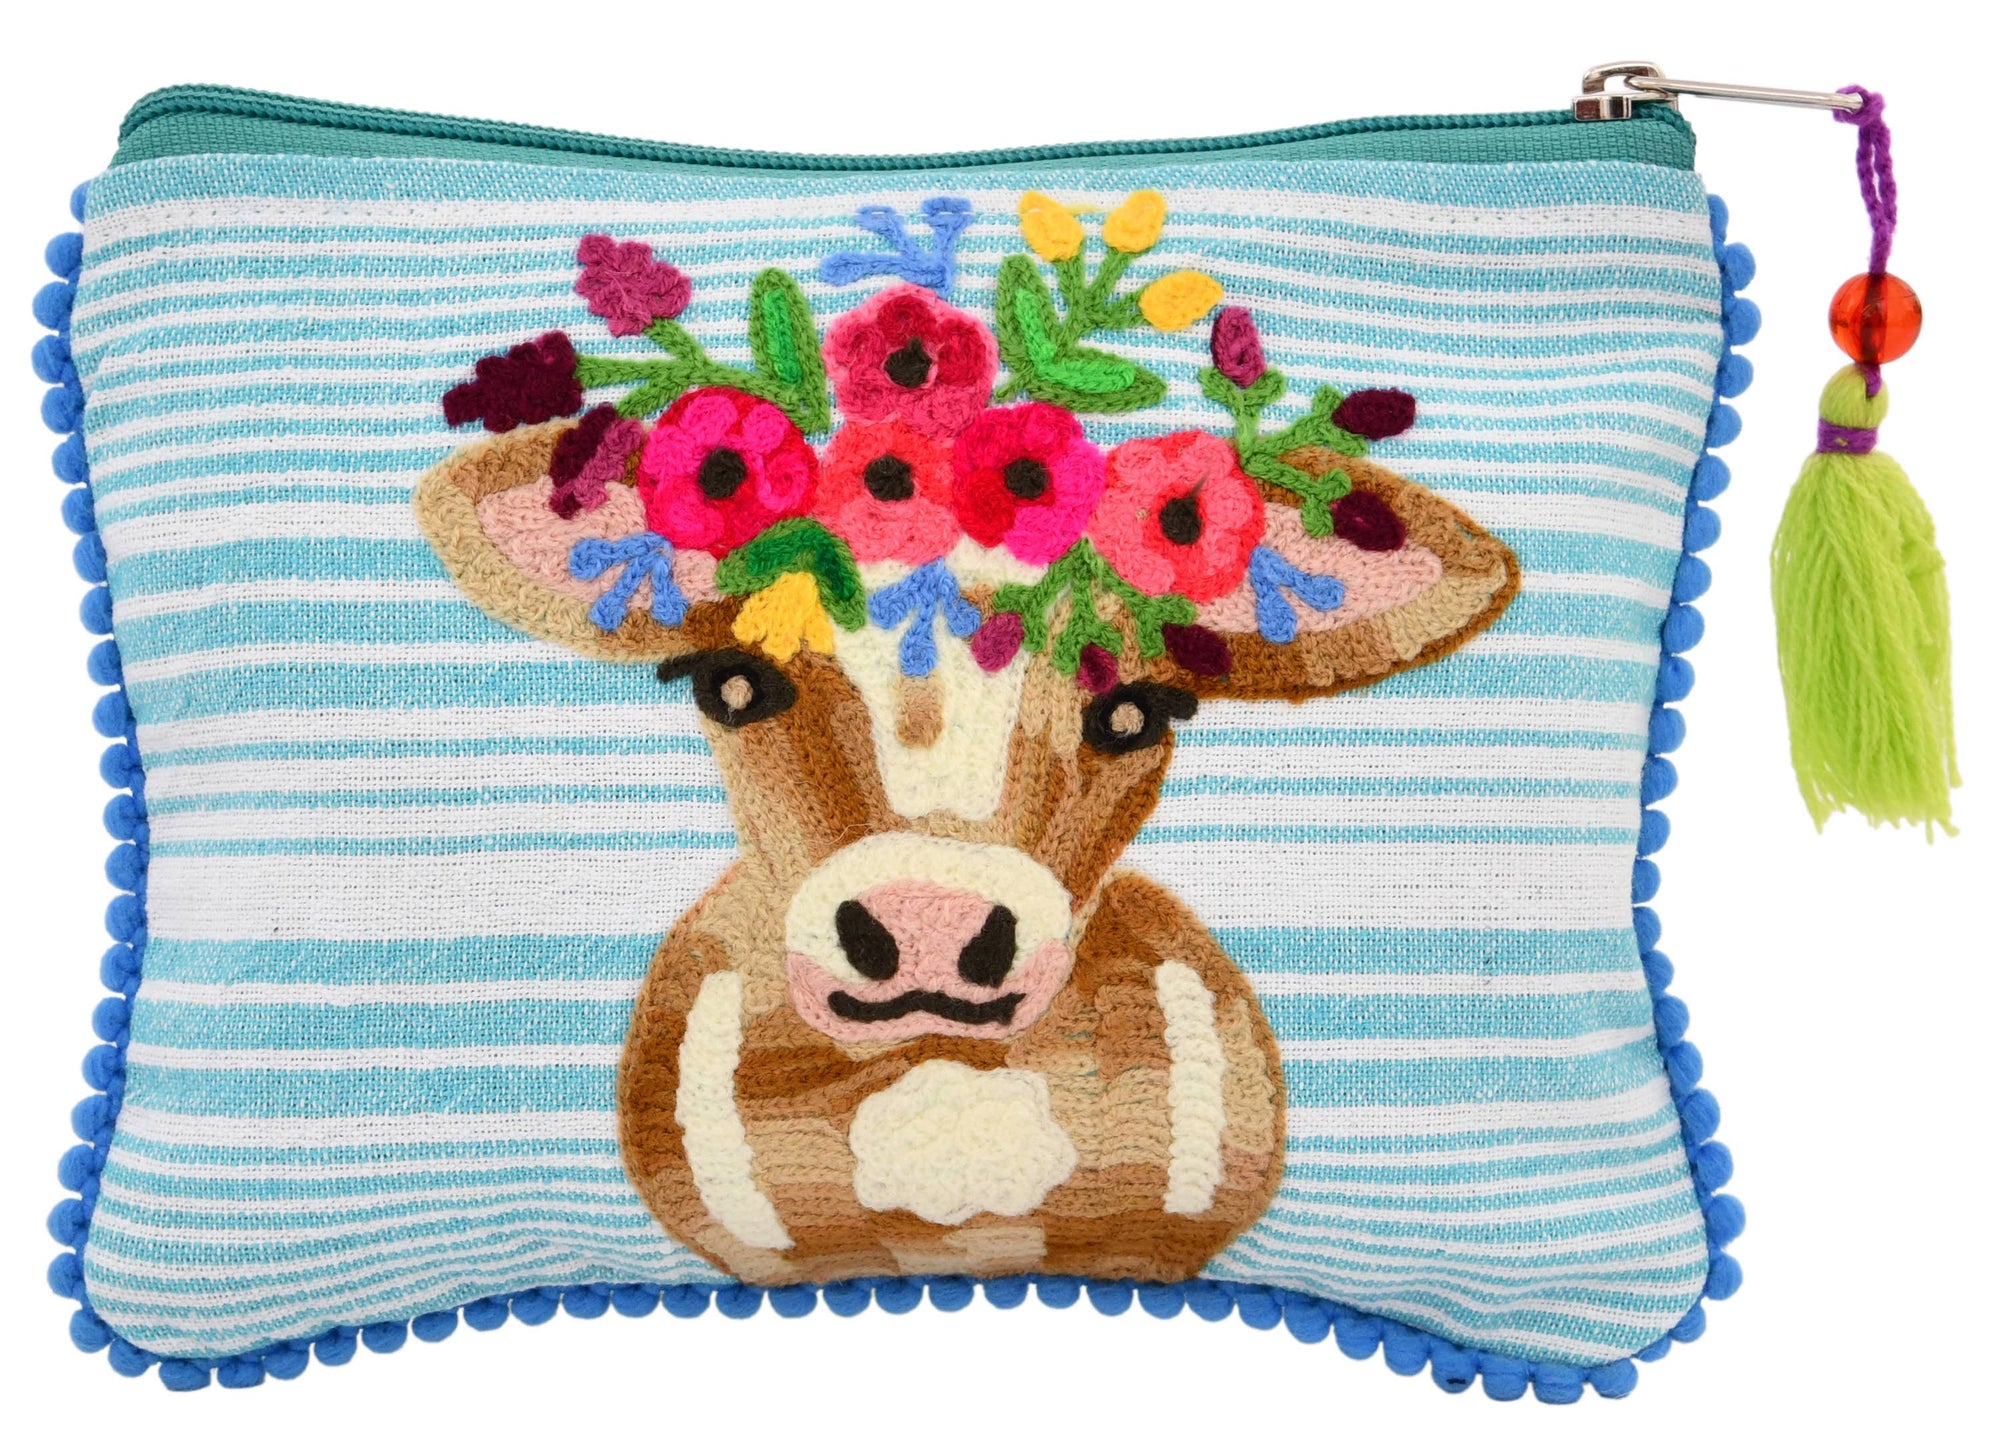 Calf on Damask Backround Pouch 6 x 8""